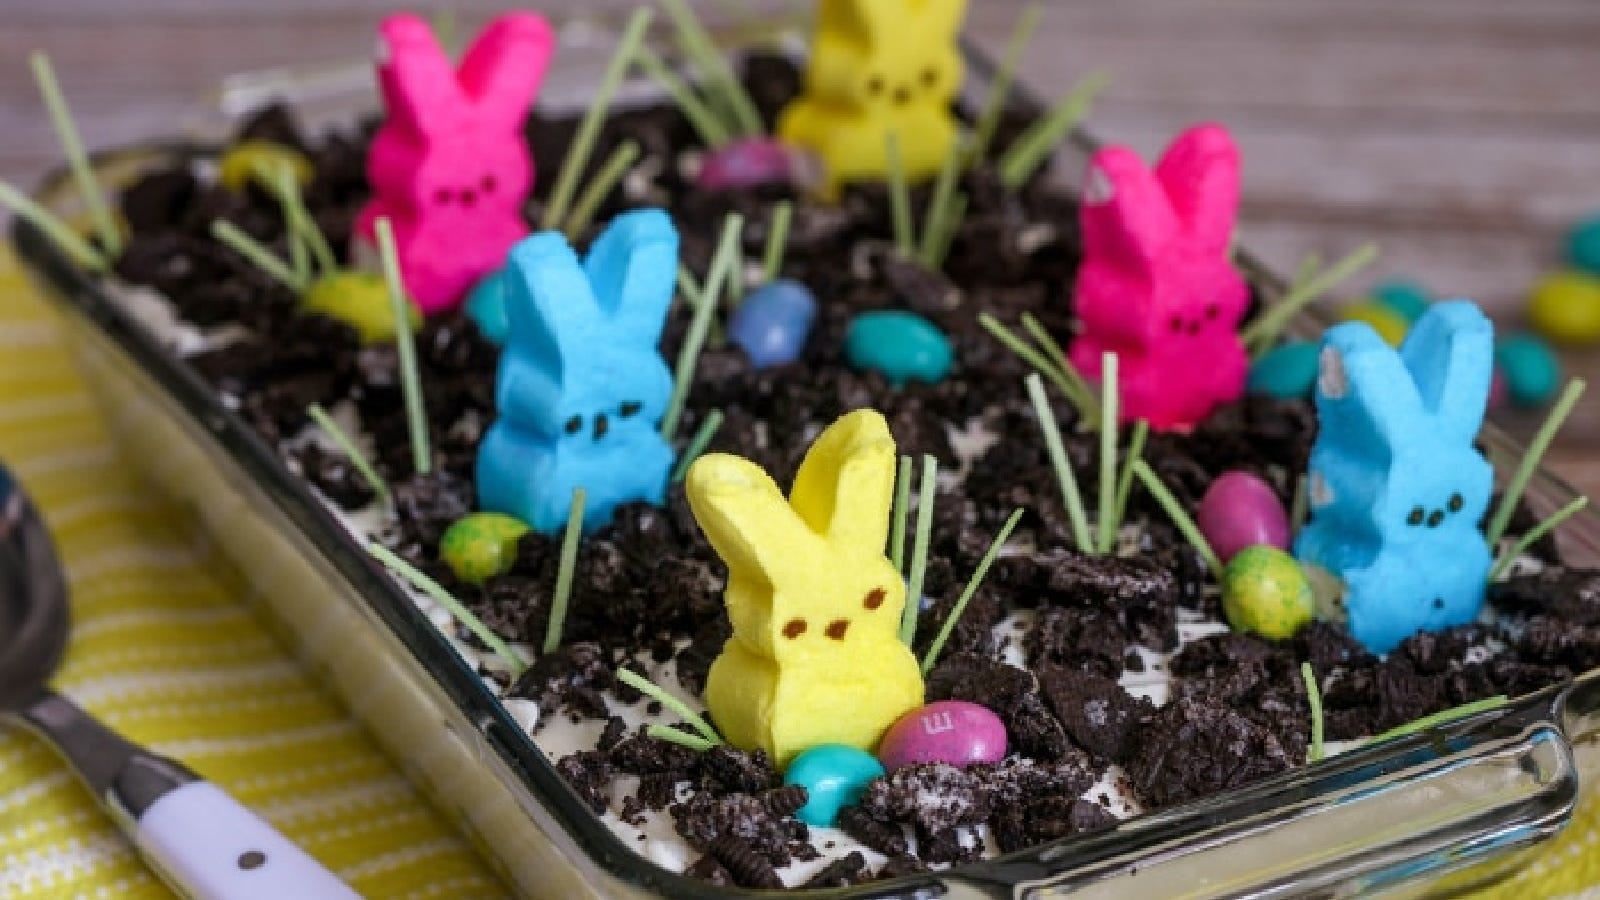 A Pyrex casserole dish filled with Oreo dirt cake, topped with crumbled Oreo's, peeps, edible grass and Easter colored M&M's.